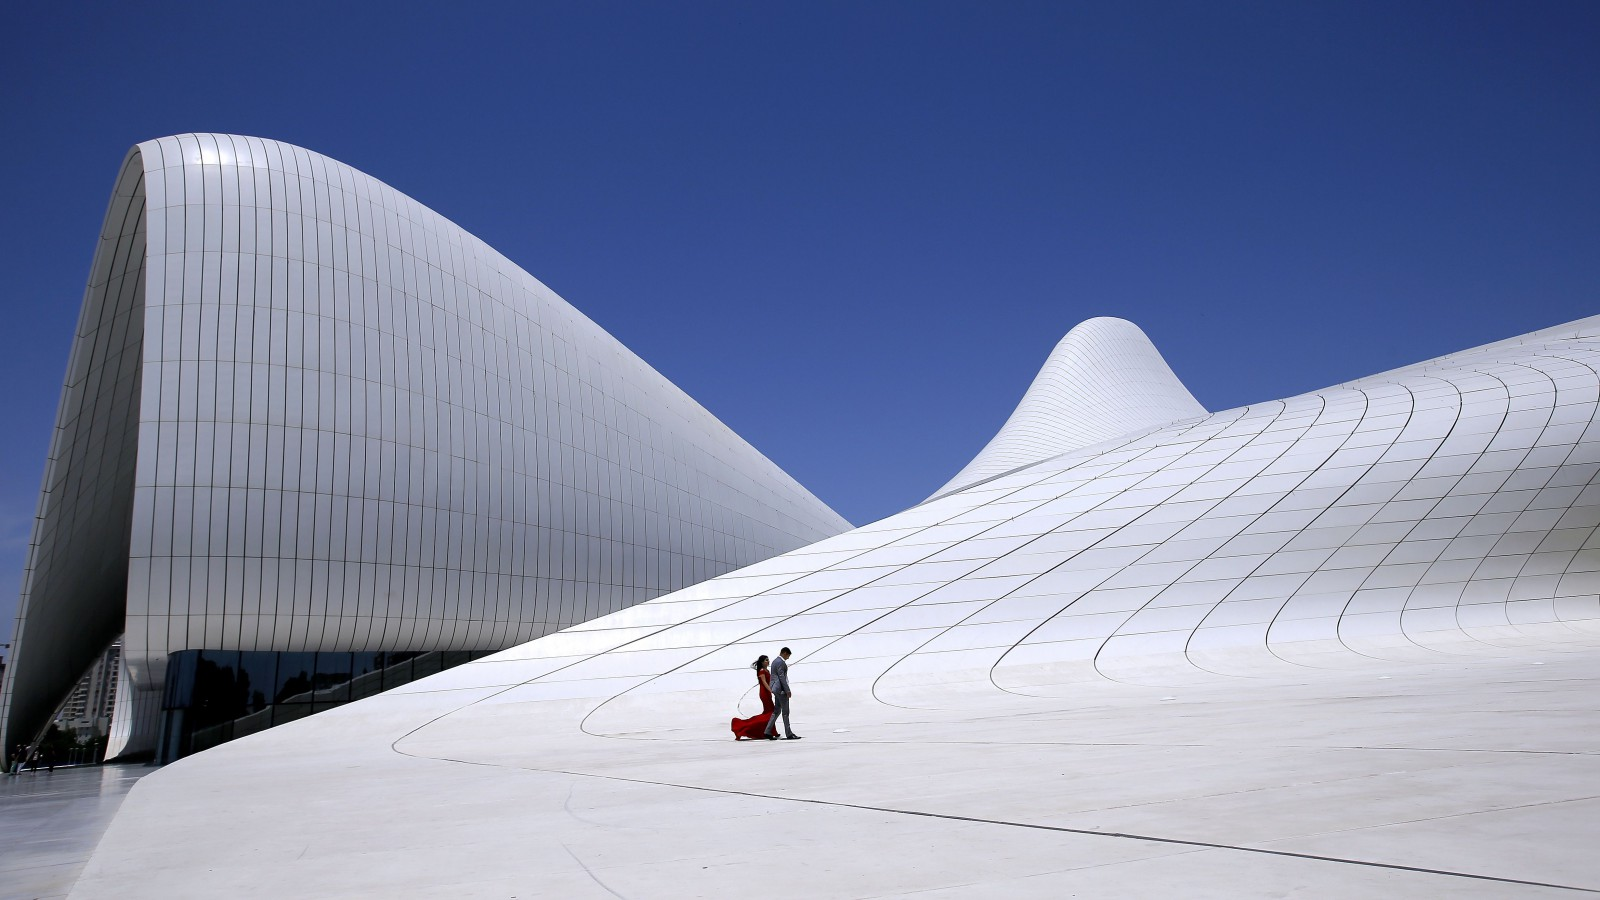 epa04806370 Newly-weds pose for their wedding photographer (not in pictured) in front of the Heydar Aliyev Center in downtown of Baku, Azerbaijan, 18 June 2015. The building was designed by Iraqi-British architect Zaha Hadid, over an area of 101801.0 square meters and was finished in 2014, becoming one of the modern symbols of Baku.  EPA/ROBERT GHEMENT